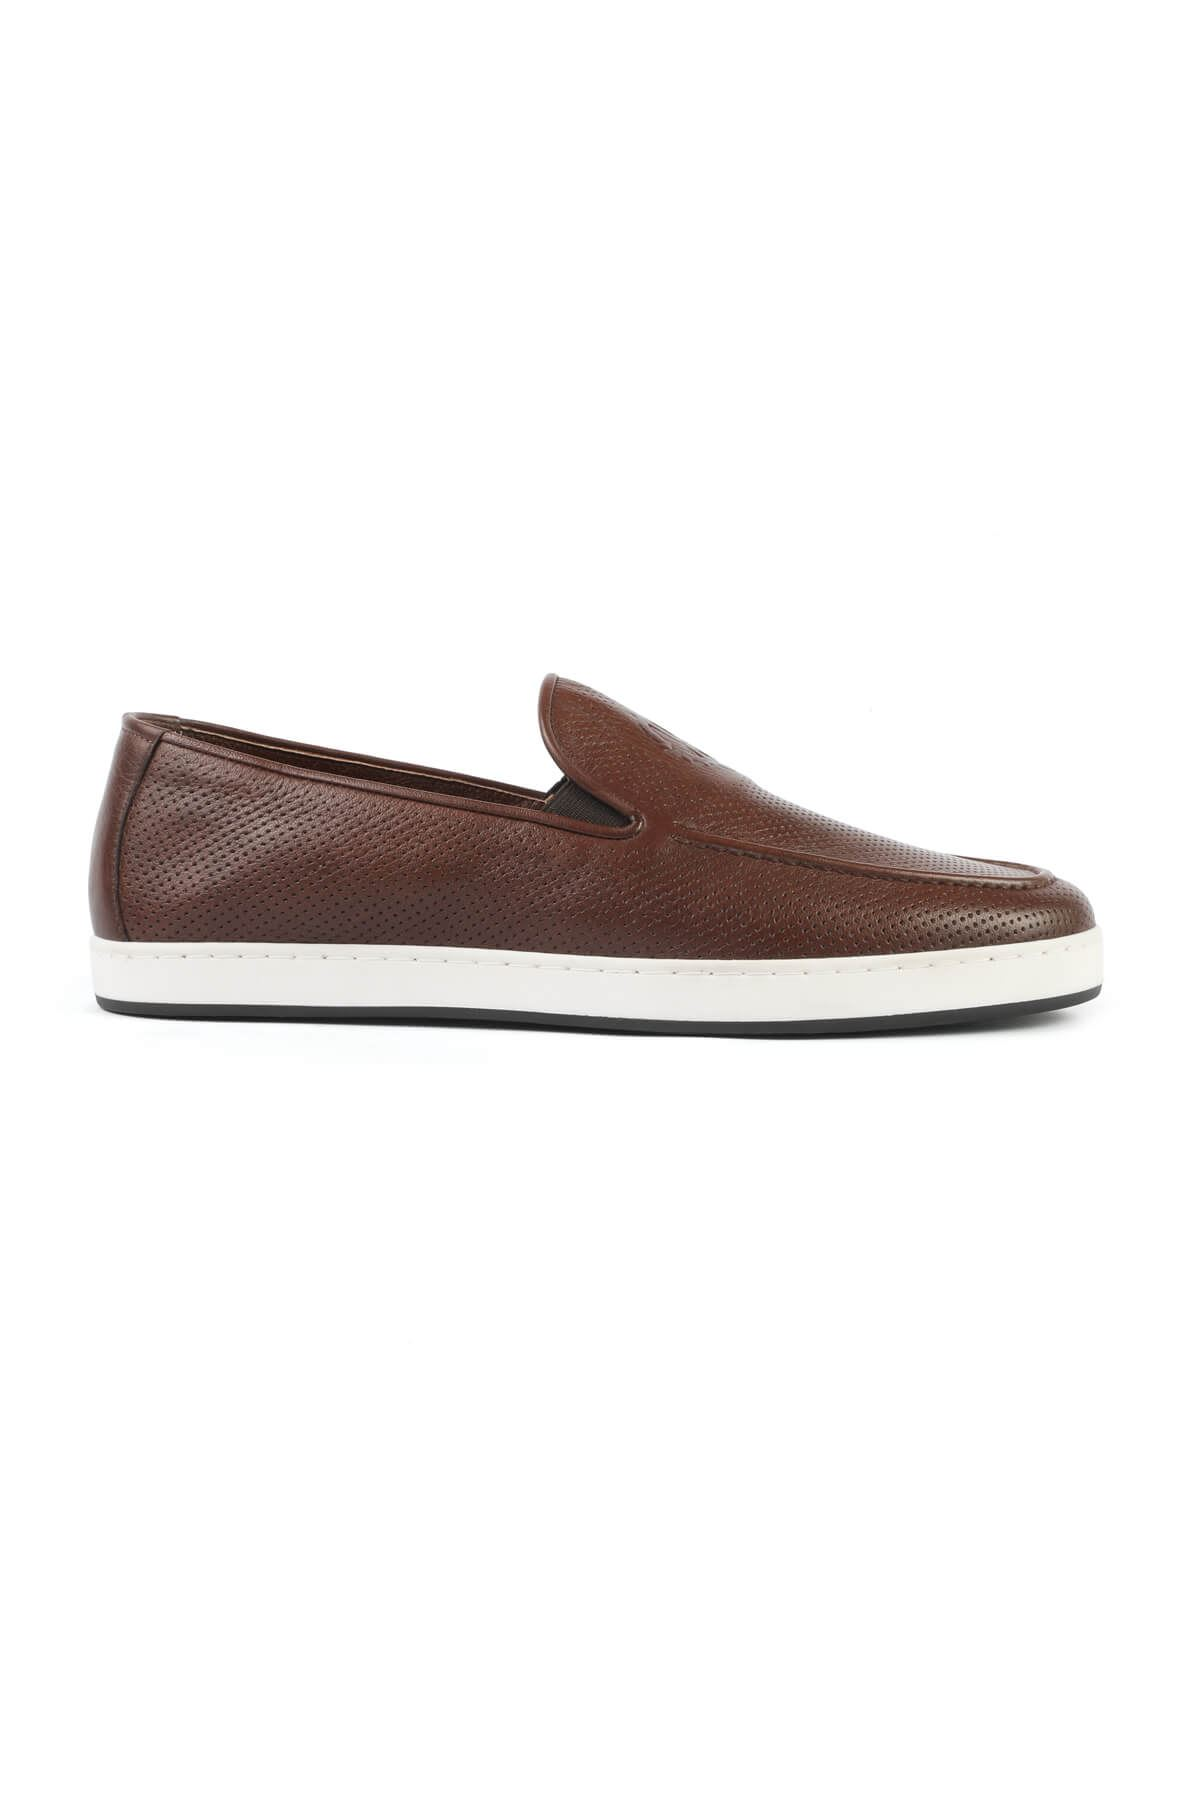 Libero 3193 Brown Loafer Shoes